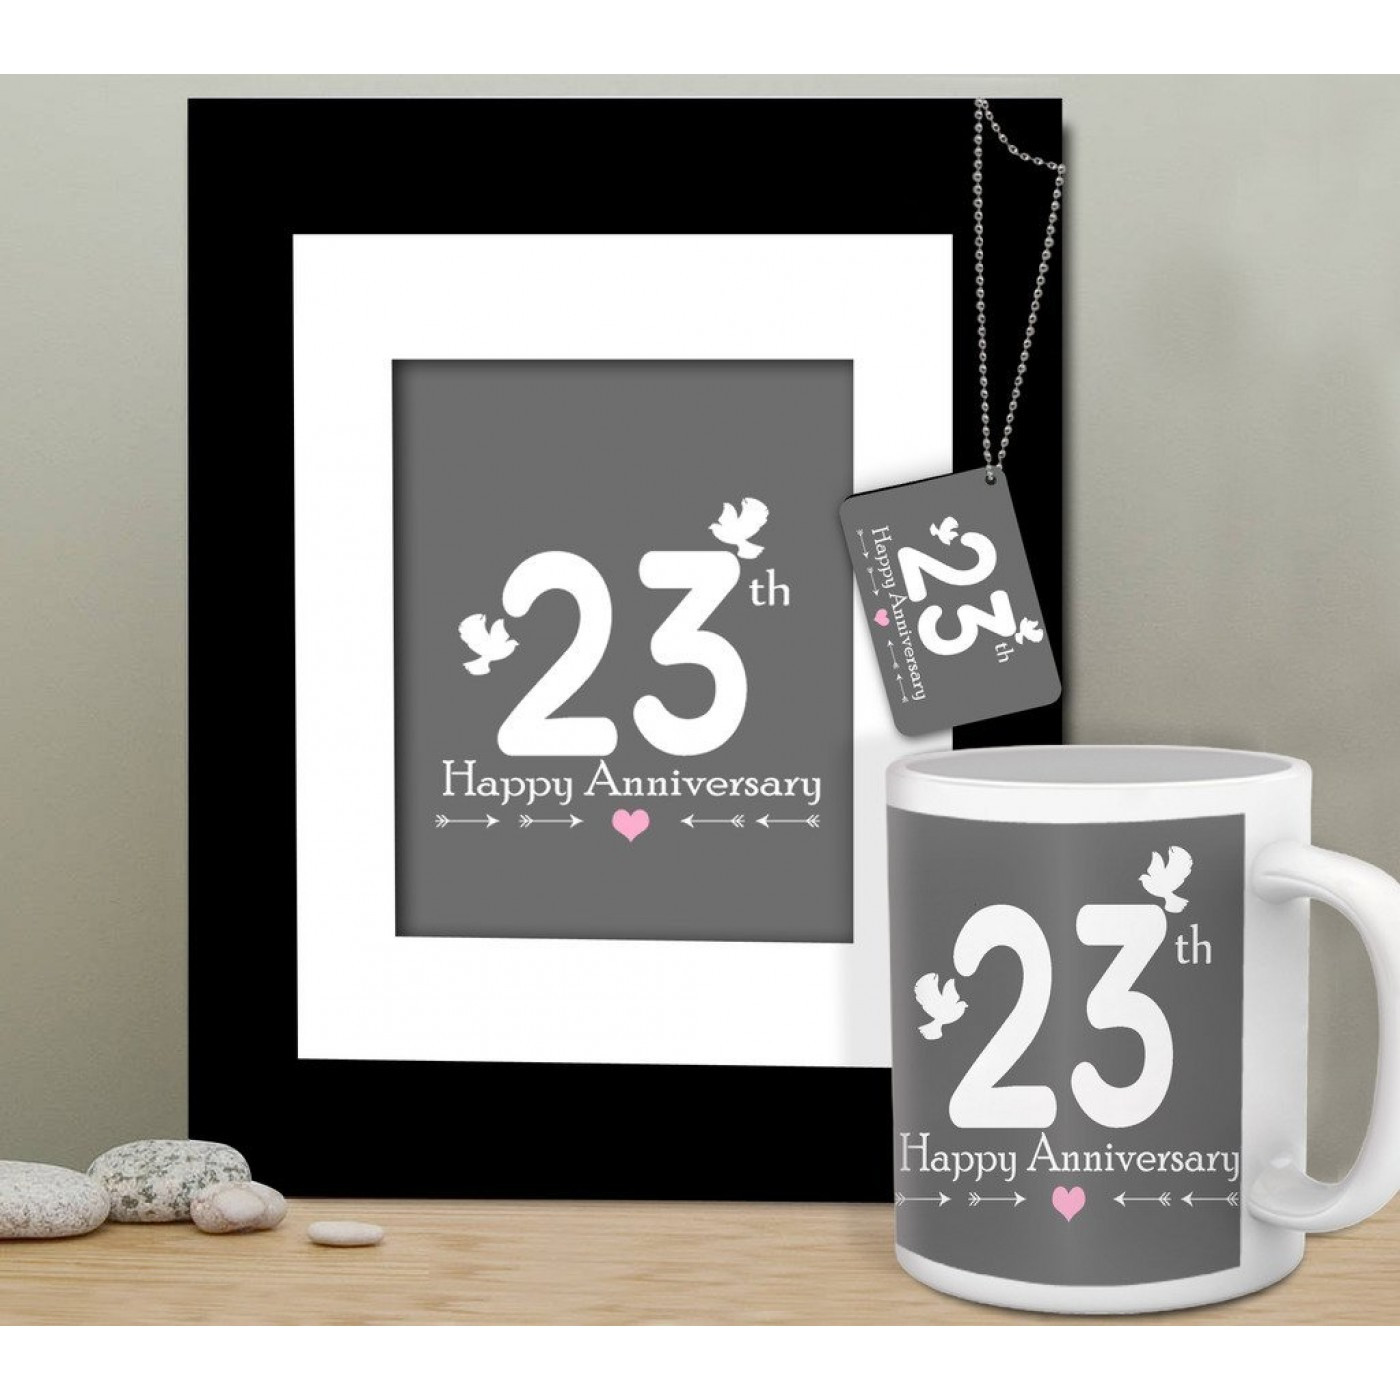 Best ideas about 23Rd Wedding Anniversary Gift Ideas Husband . Save or Pin 23rd Anniversary Gift for Husband Anniversary Gift for Now.